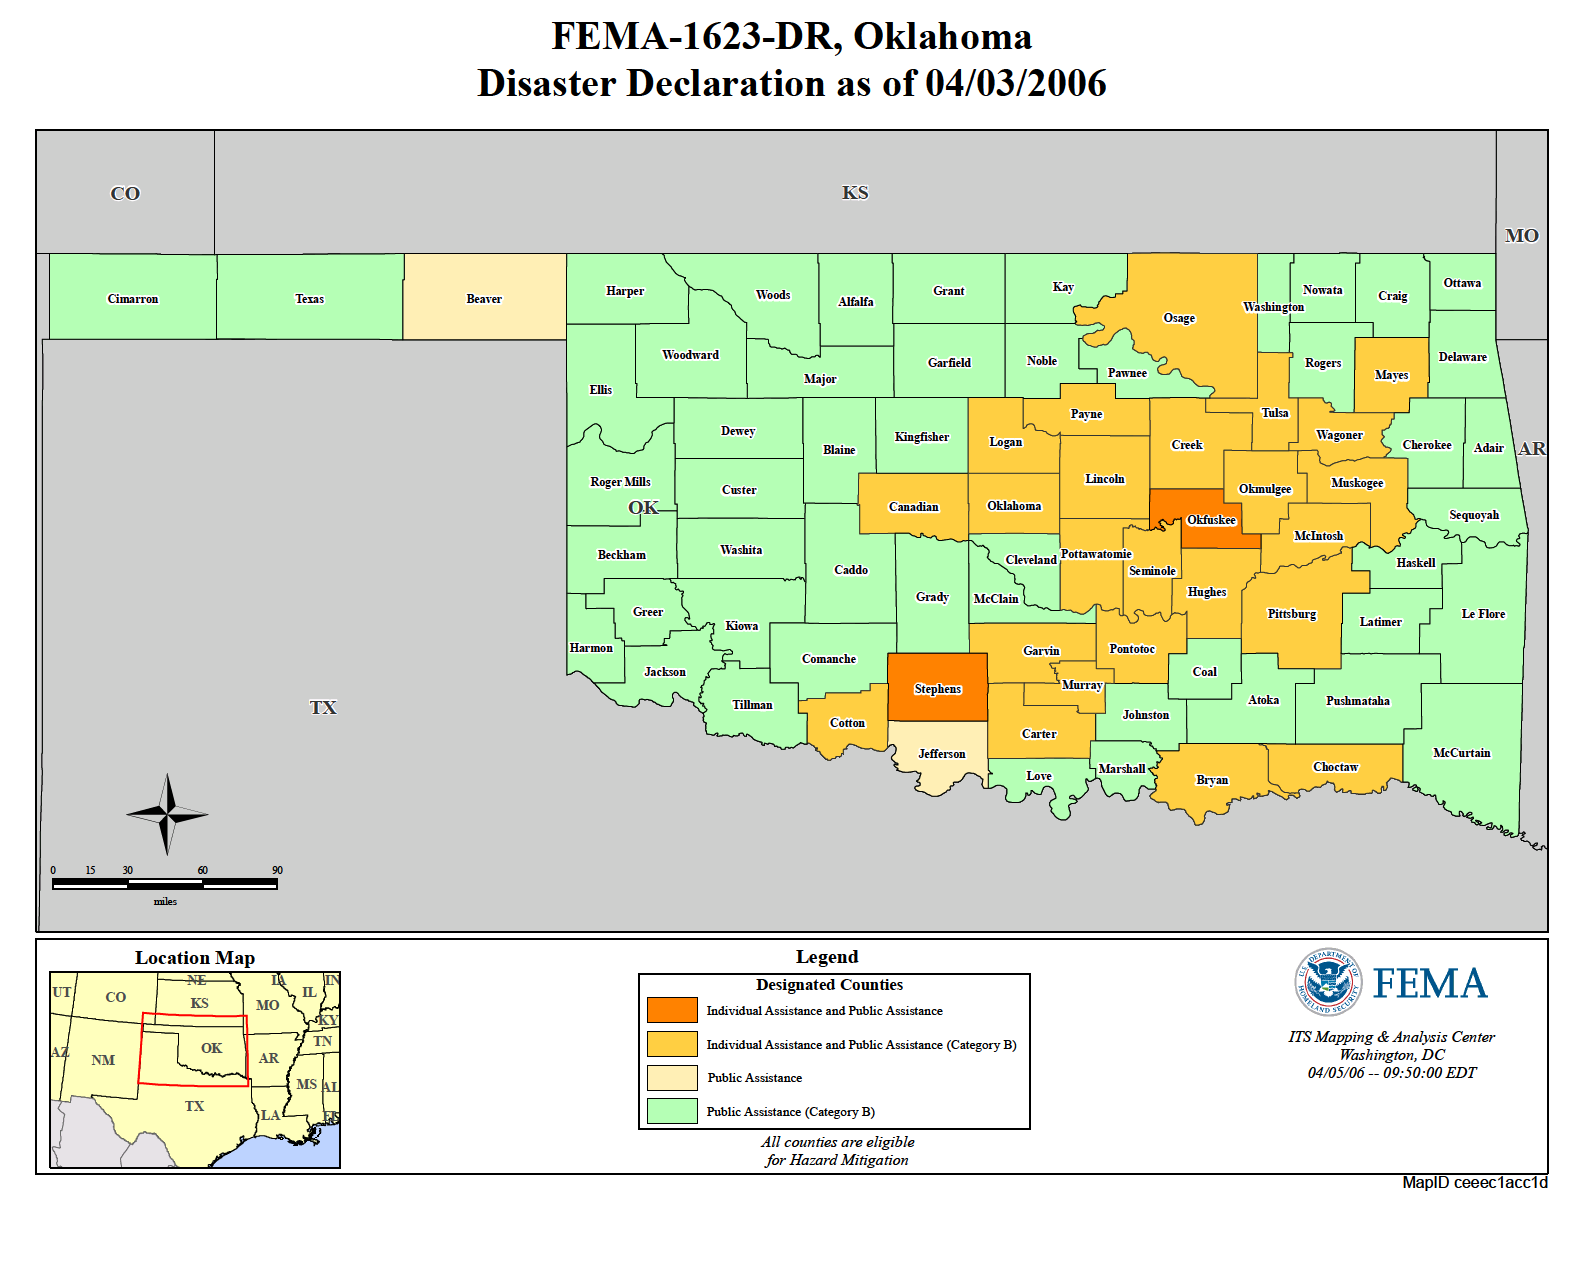 Oklahoma Severe Wildfire Threat (DR-1623) | FEMA.gov